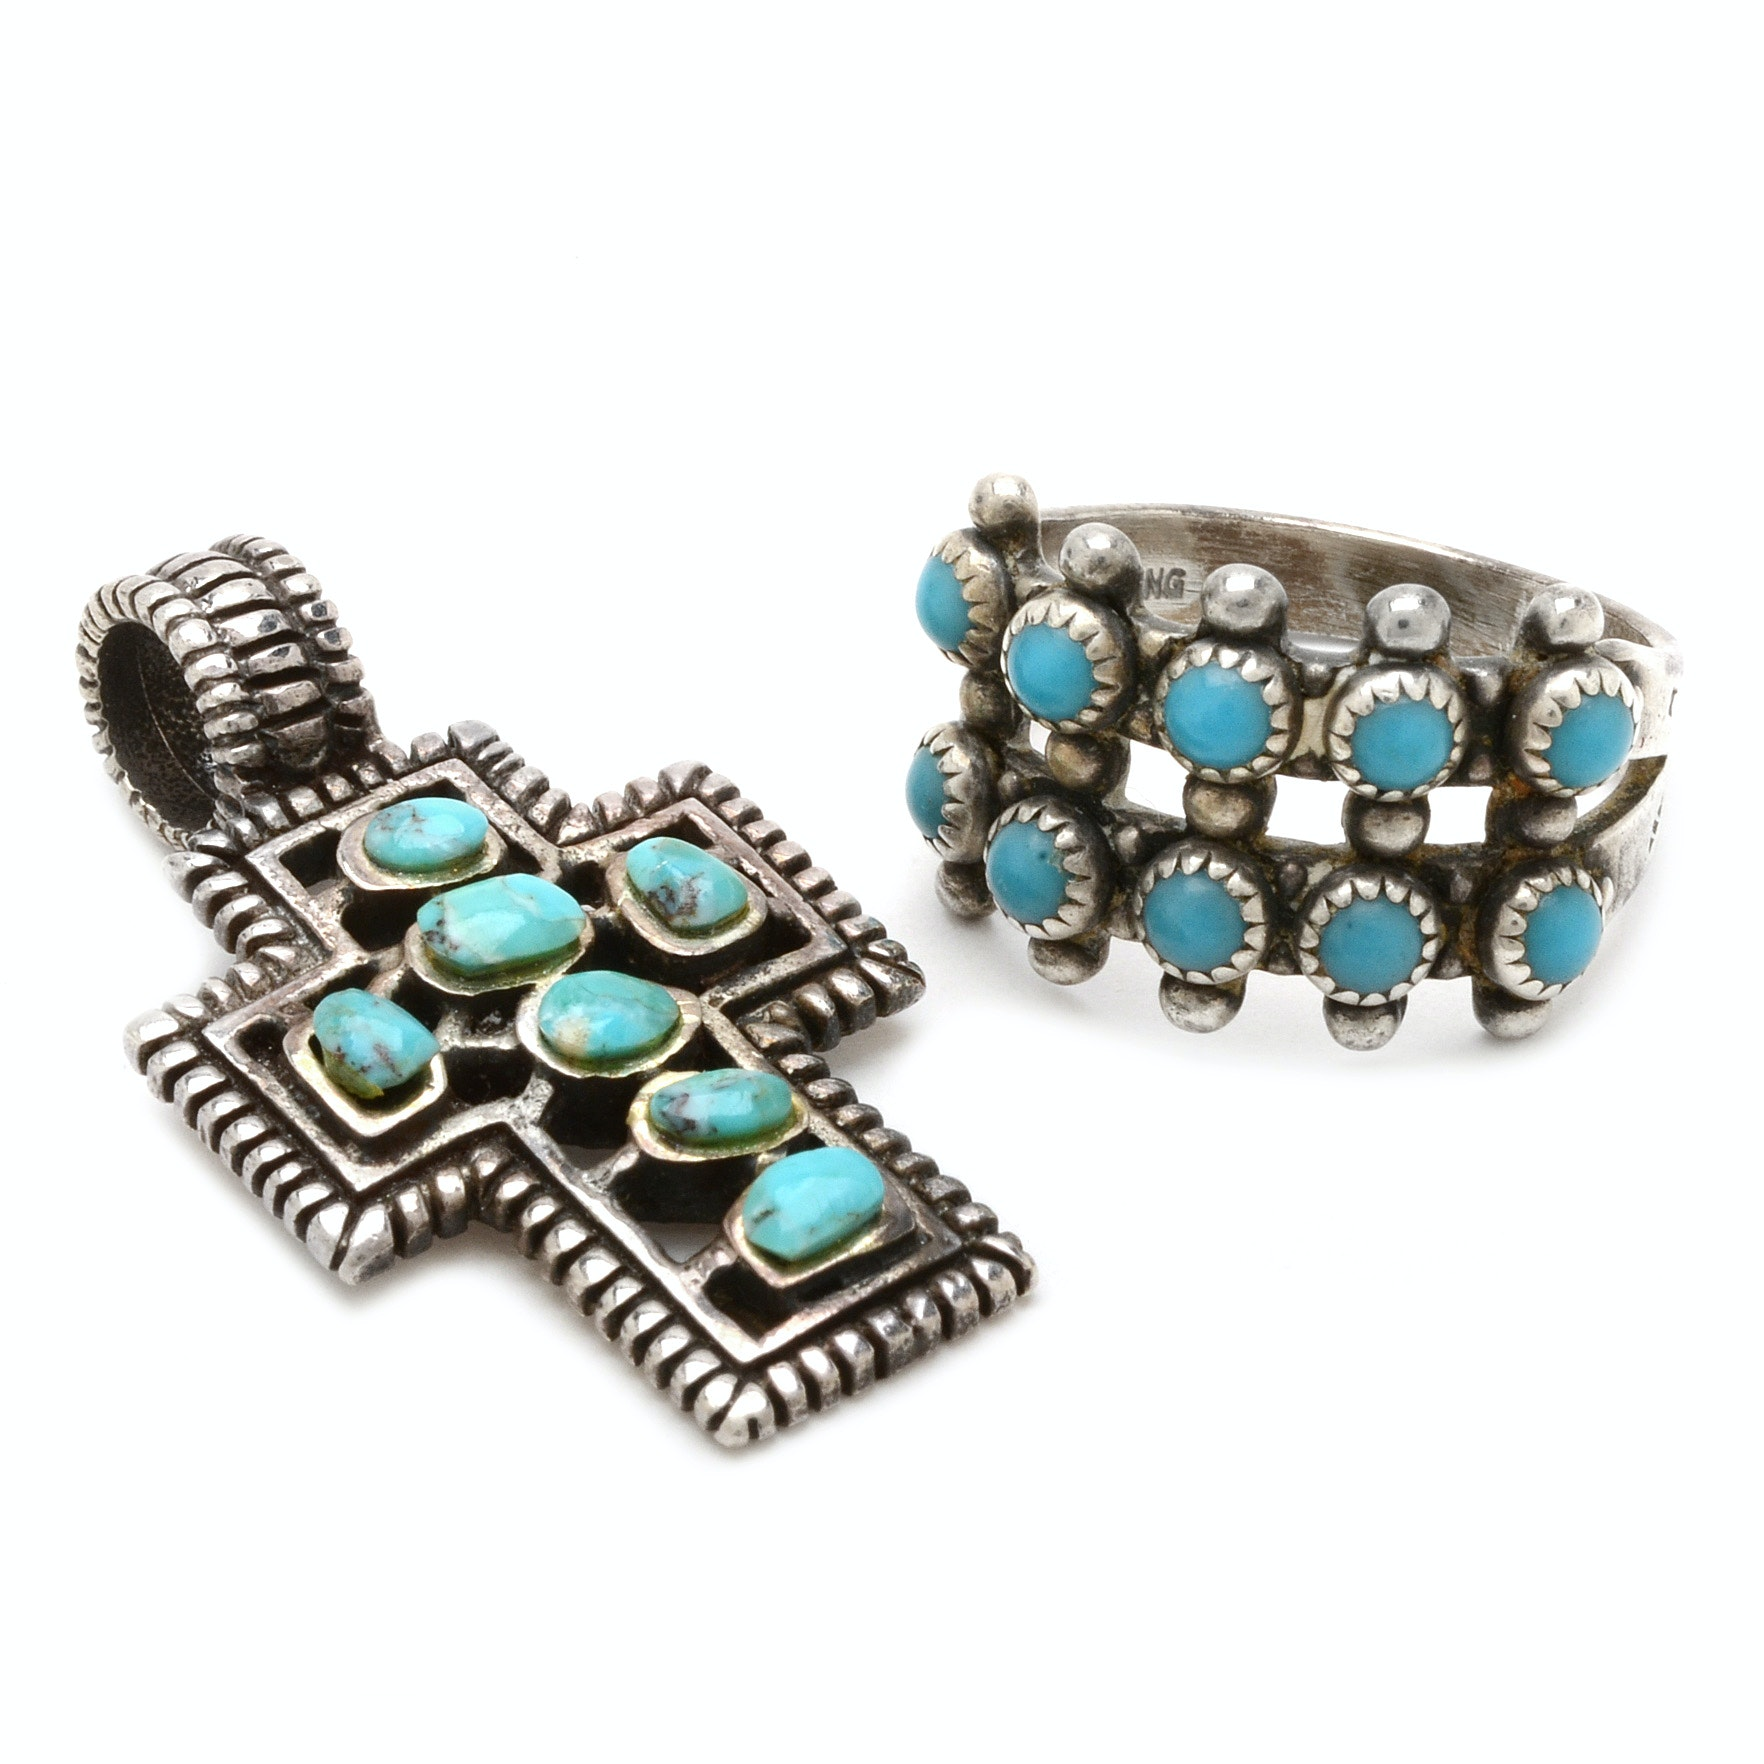 Southwest Style Sterling Silver and Turquoise Jewelry